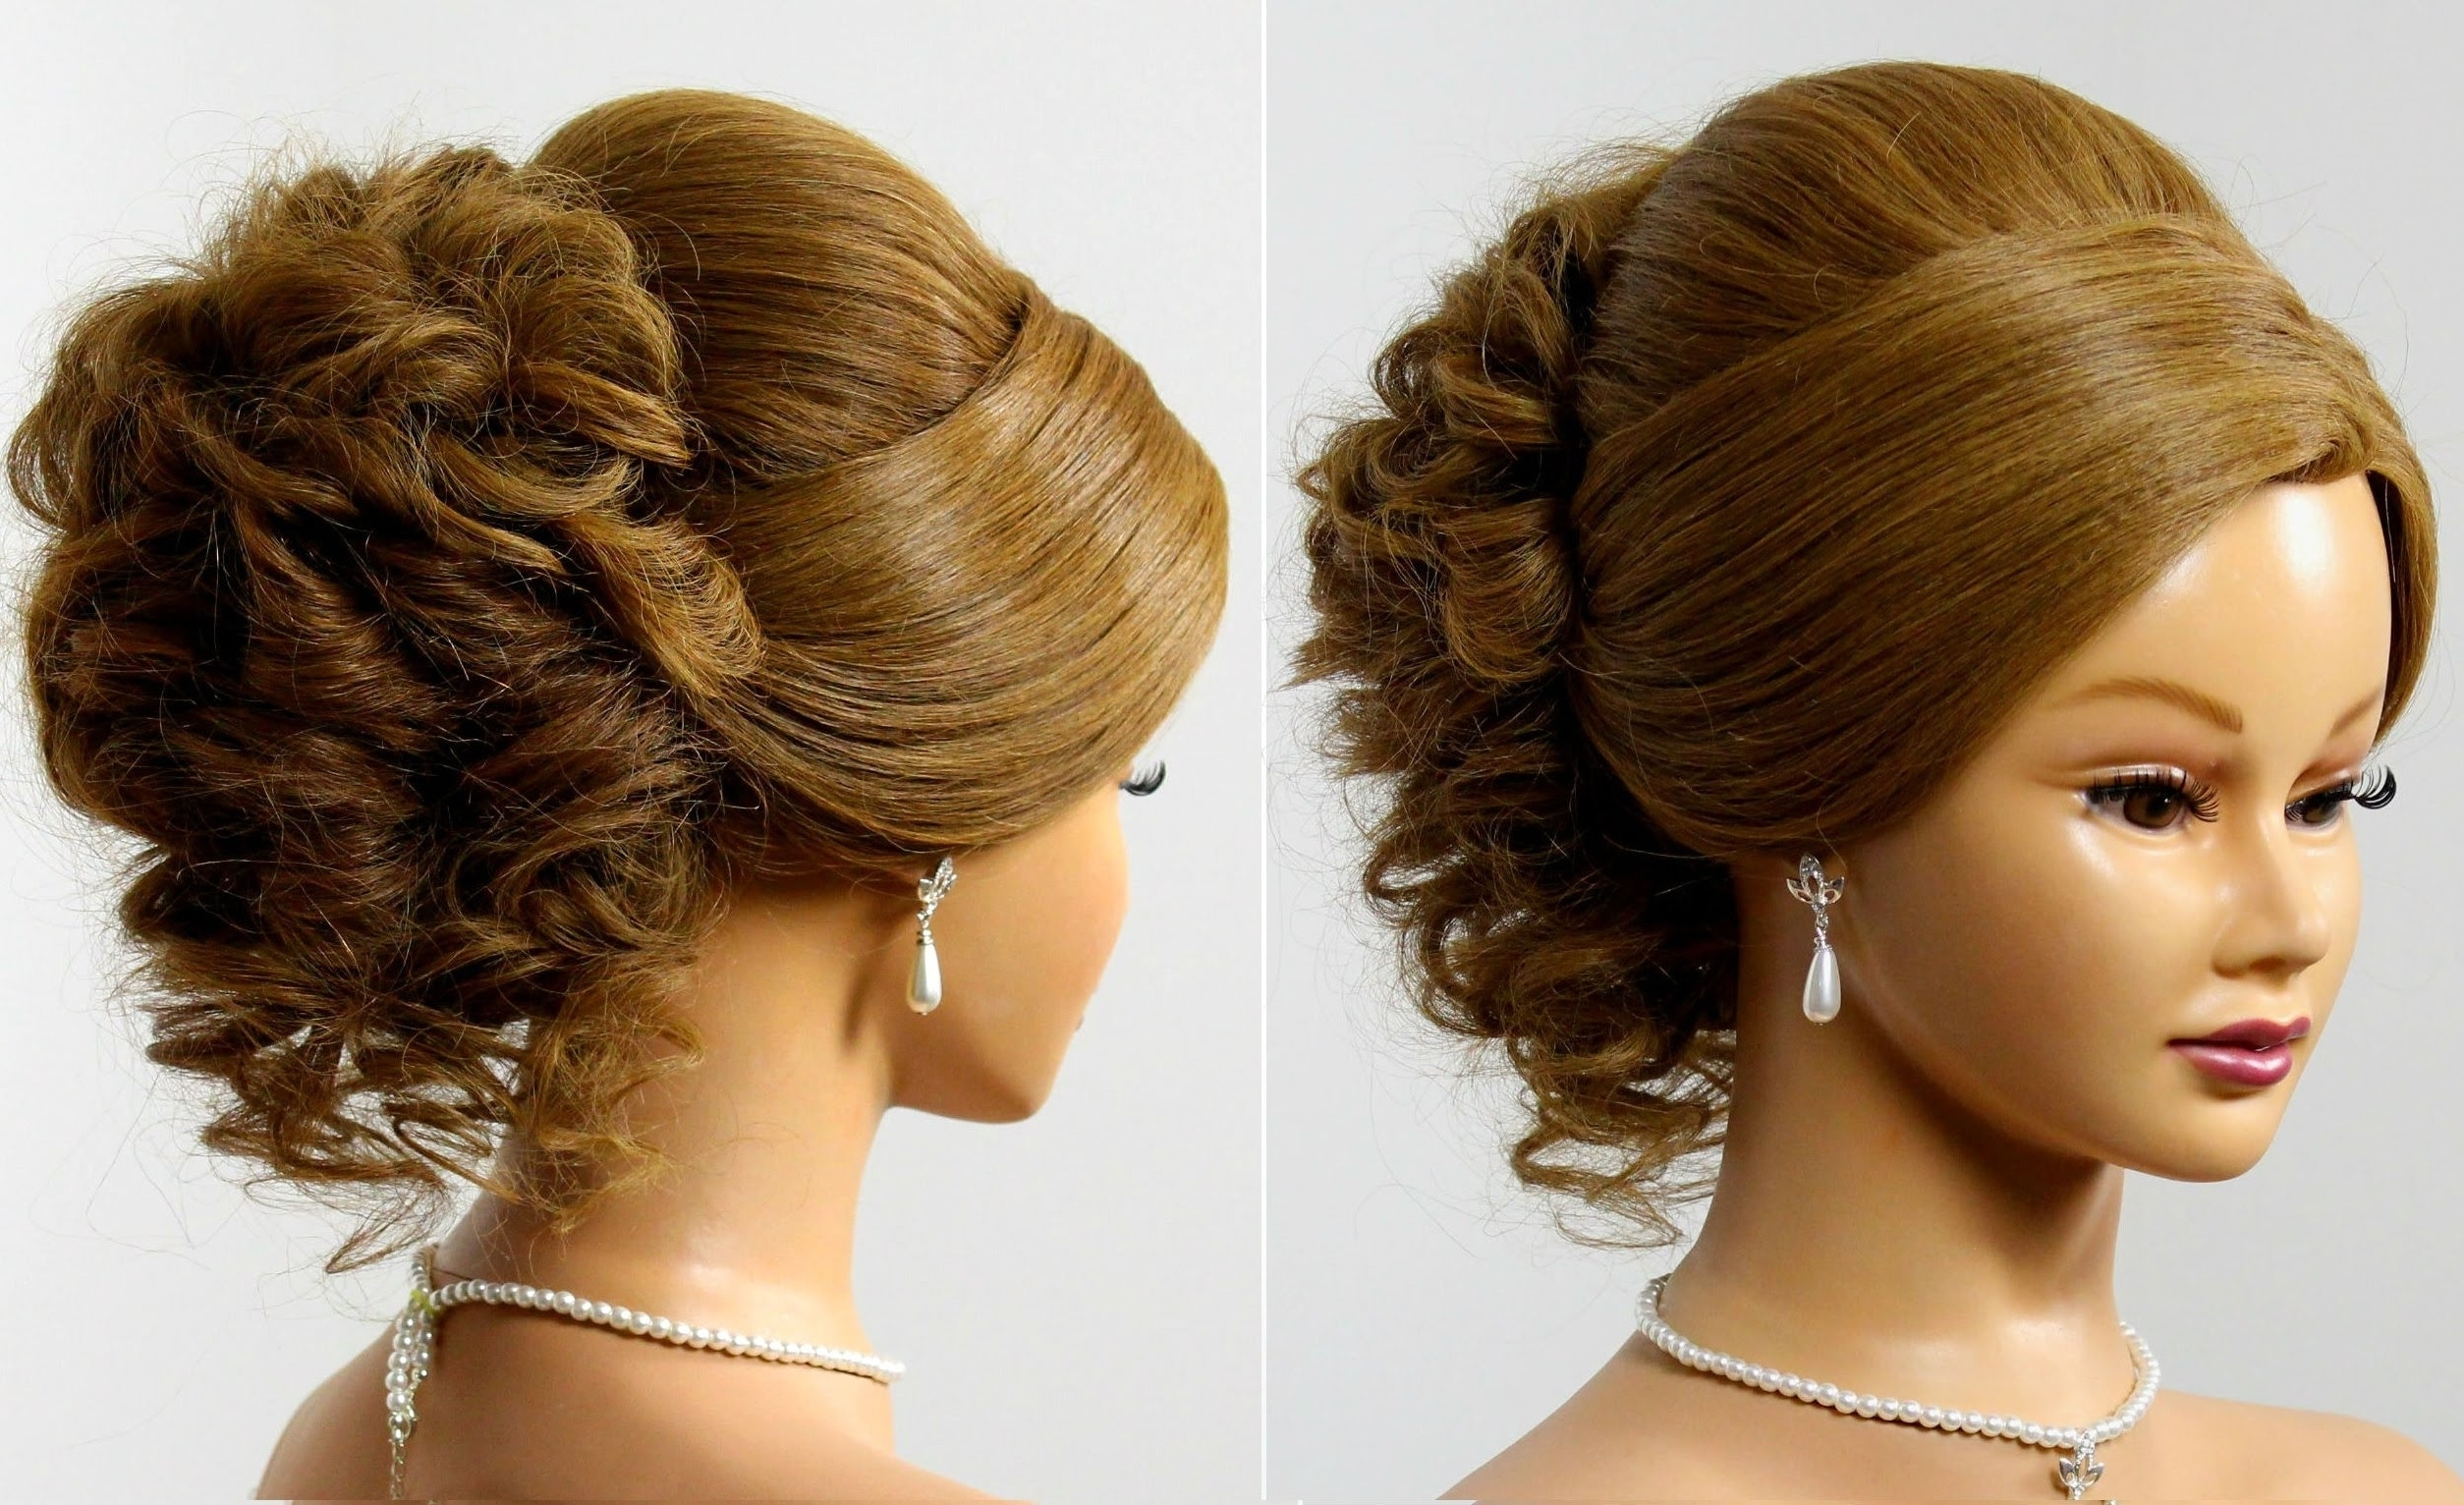 Formal Updo Hairstyles For Medium Hair Fancy Updo Hairstyles For Regarding Fancy Updo Hairstyles For Long Hair (View 14 of 15)